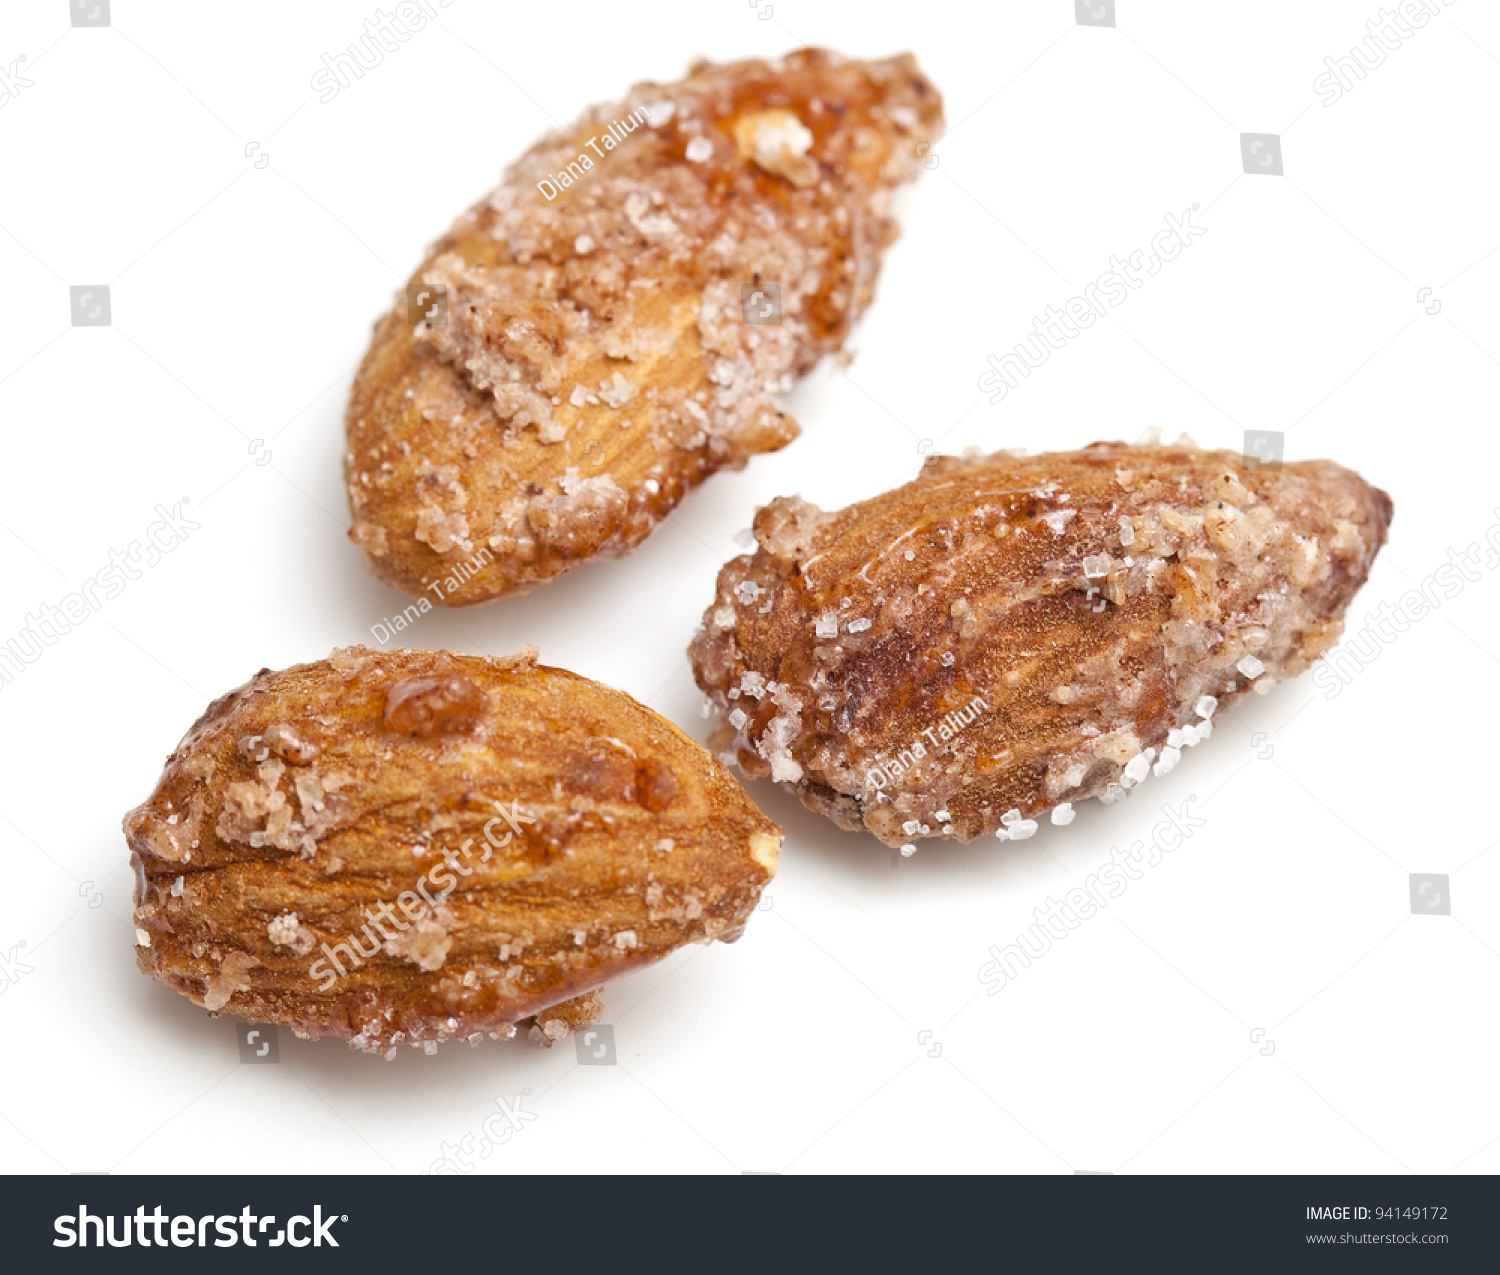 Fried Almonds With Sugar And Cinnamon Isolated On White Background ...